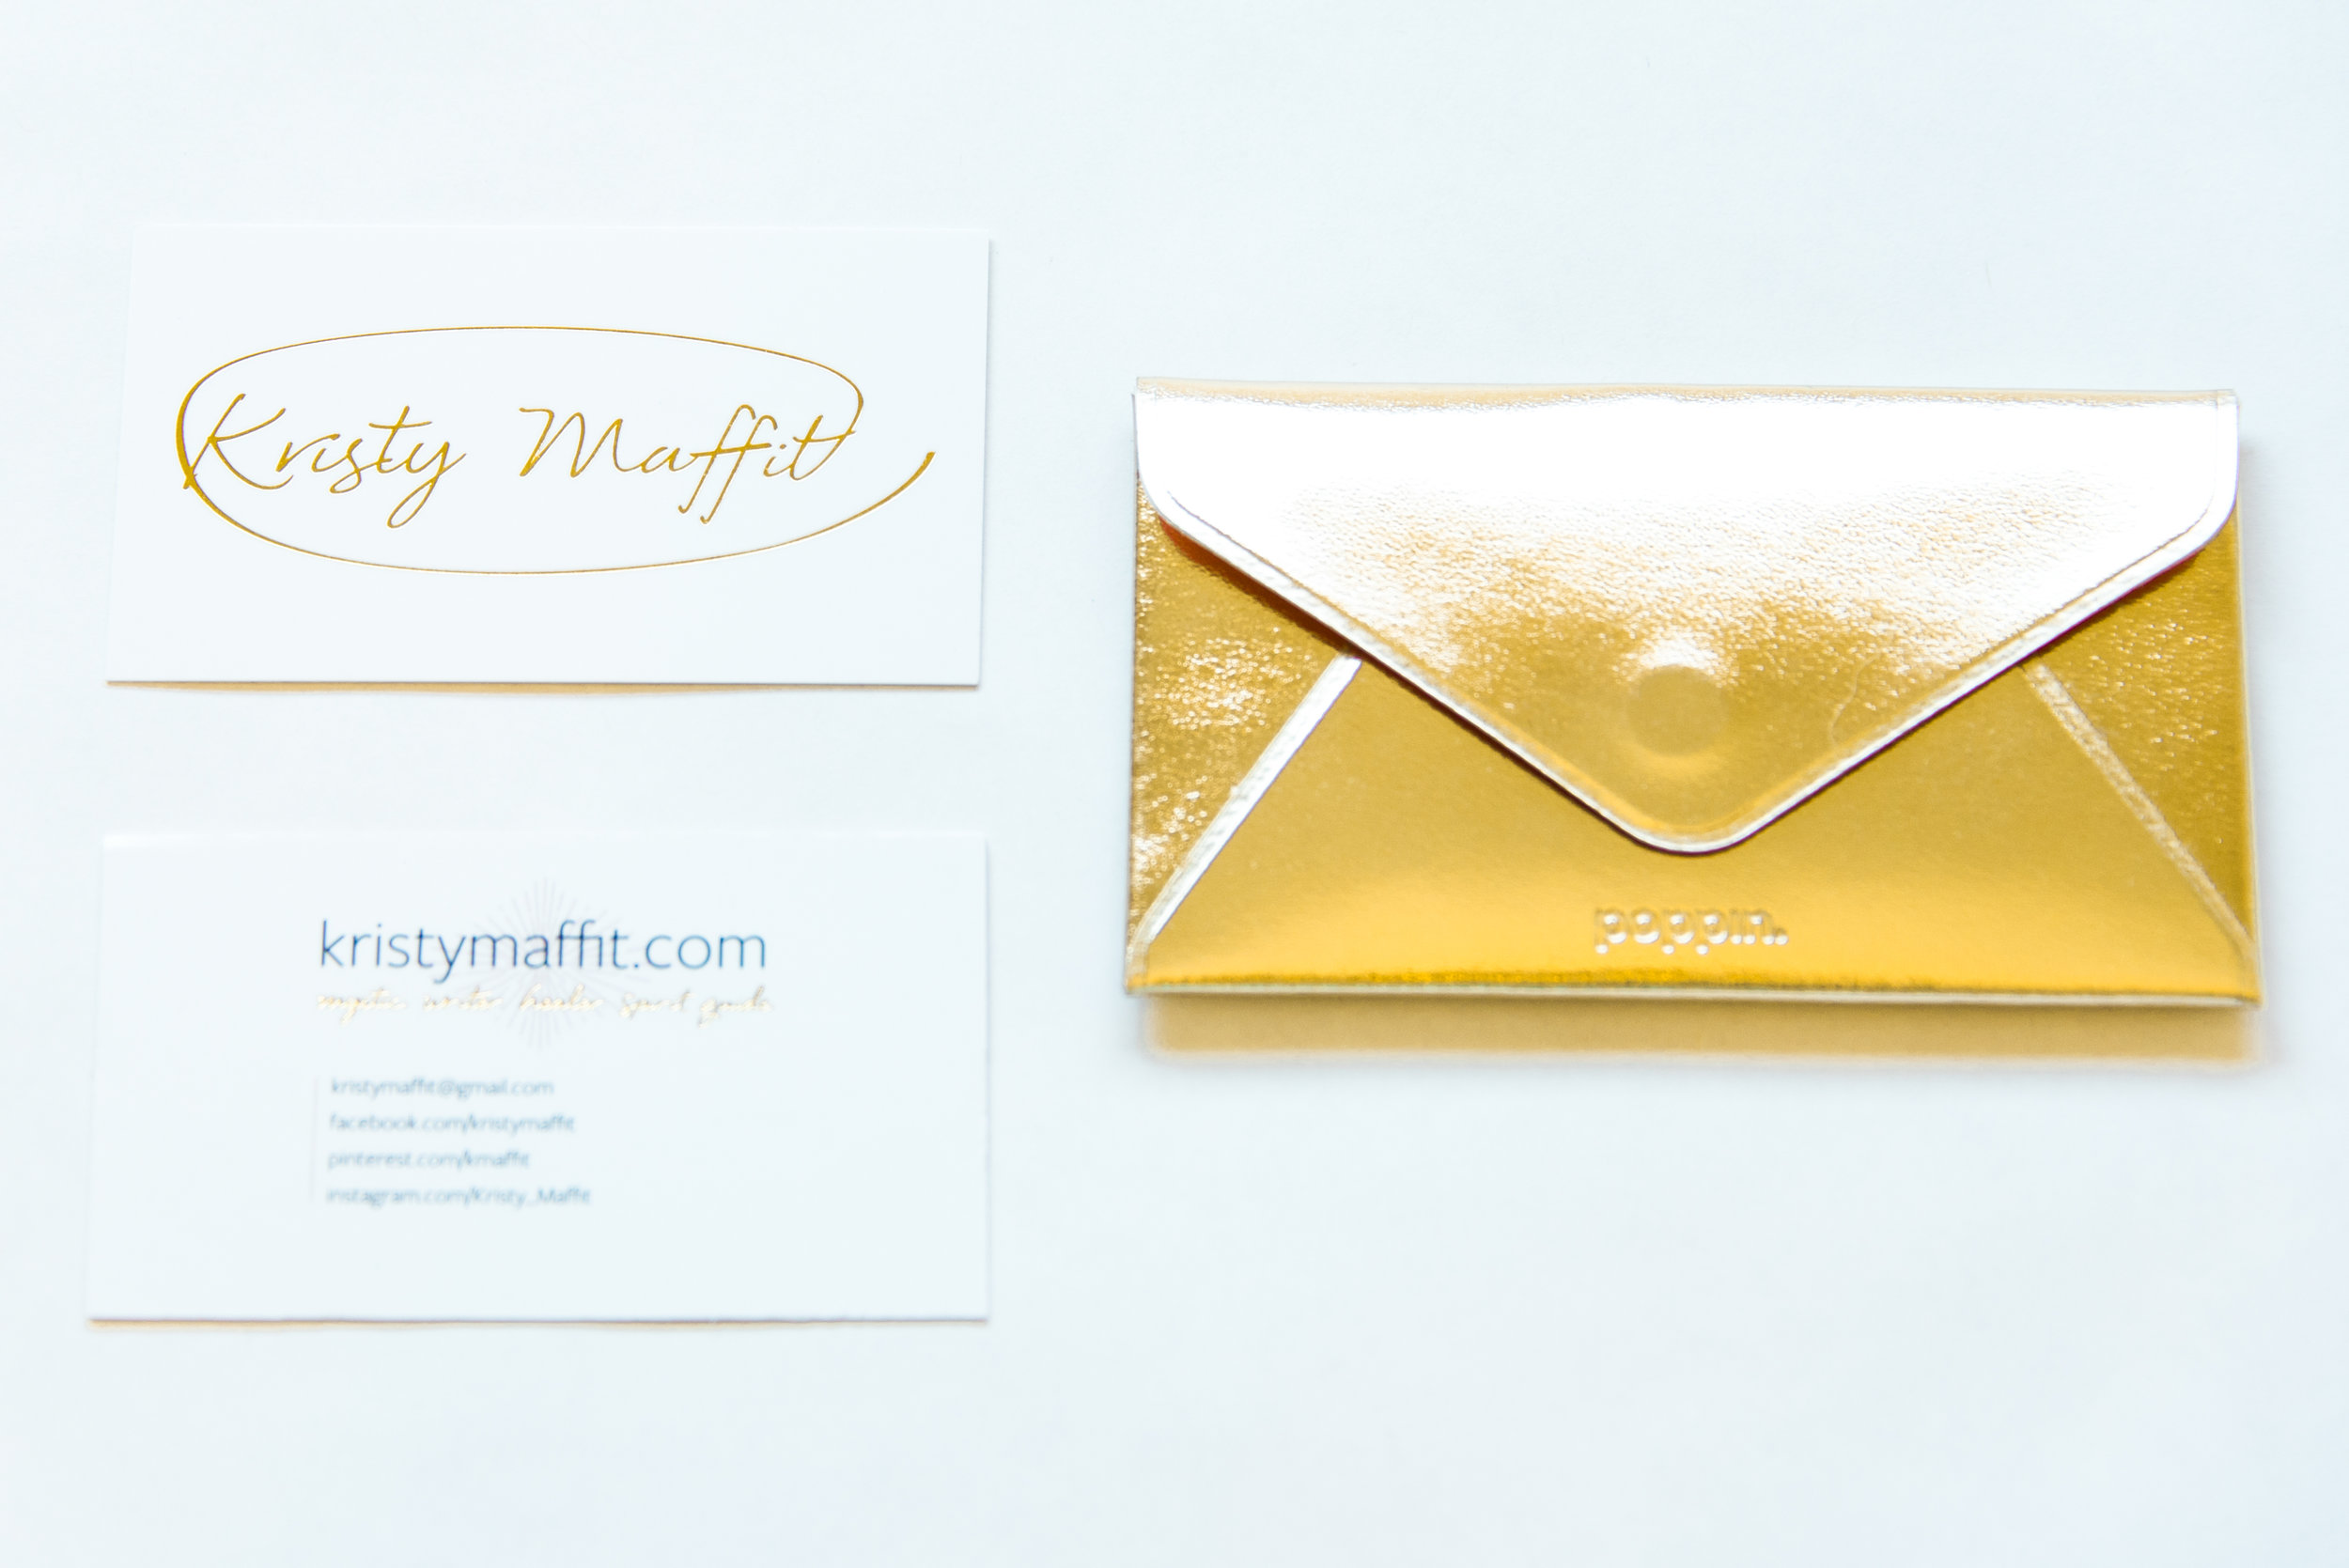 Business Cards for Kristy Maffit, created by Brightly & Co. (www.BrightlyandCo.com).